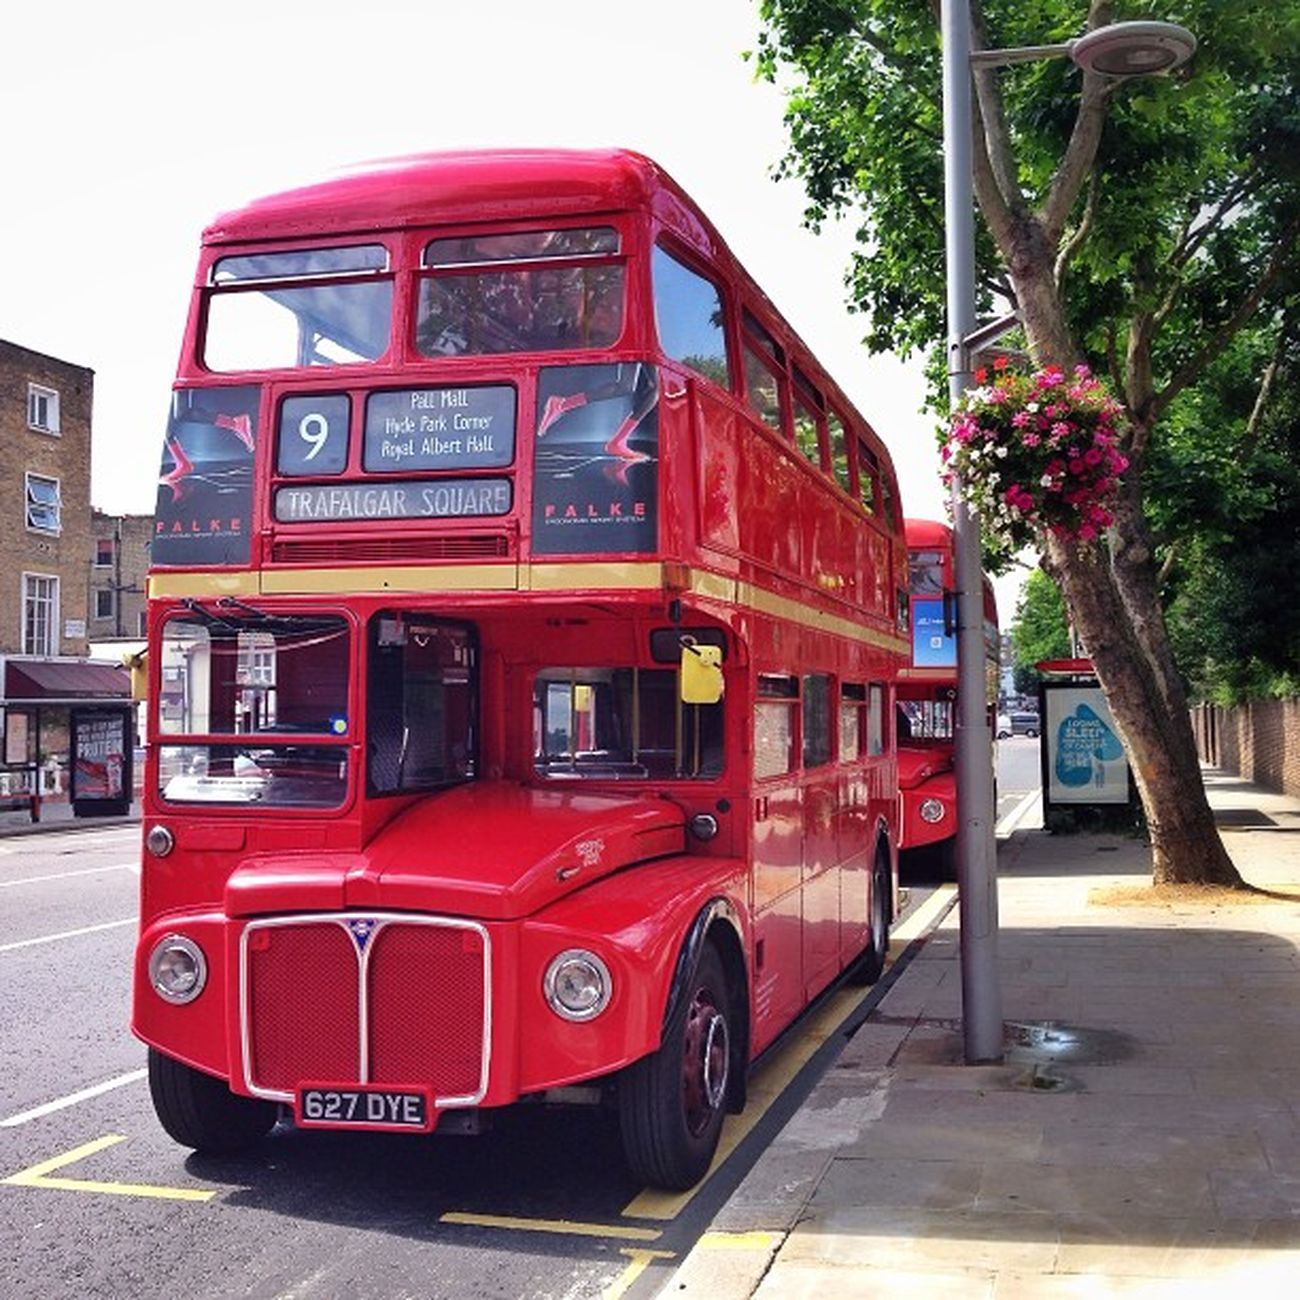 Love this old #red #Doubledecker ☀️???? #alan_in_london #gf_uk #gang_family #igers_london #insta_london #london_only #thisislondon #ic_cities #ic_cities_london #ig_england #love_london #gi_uk #ig_london #londonpop #allshots_ #aauk #YourTurnBritain Gi_uk Igers_london Ig_england Love_london Red Ic_cities_london Gang_family Ig_london Aauk Londonpop Capture_today Doubledecker Yourturnbritain Allshots_ Top_masters London_only Ic_cities Gf_uk Alan_in_london Insta_london Thisislondon